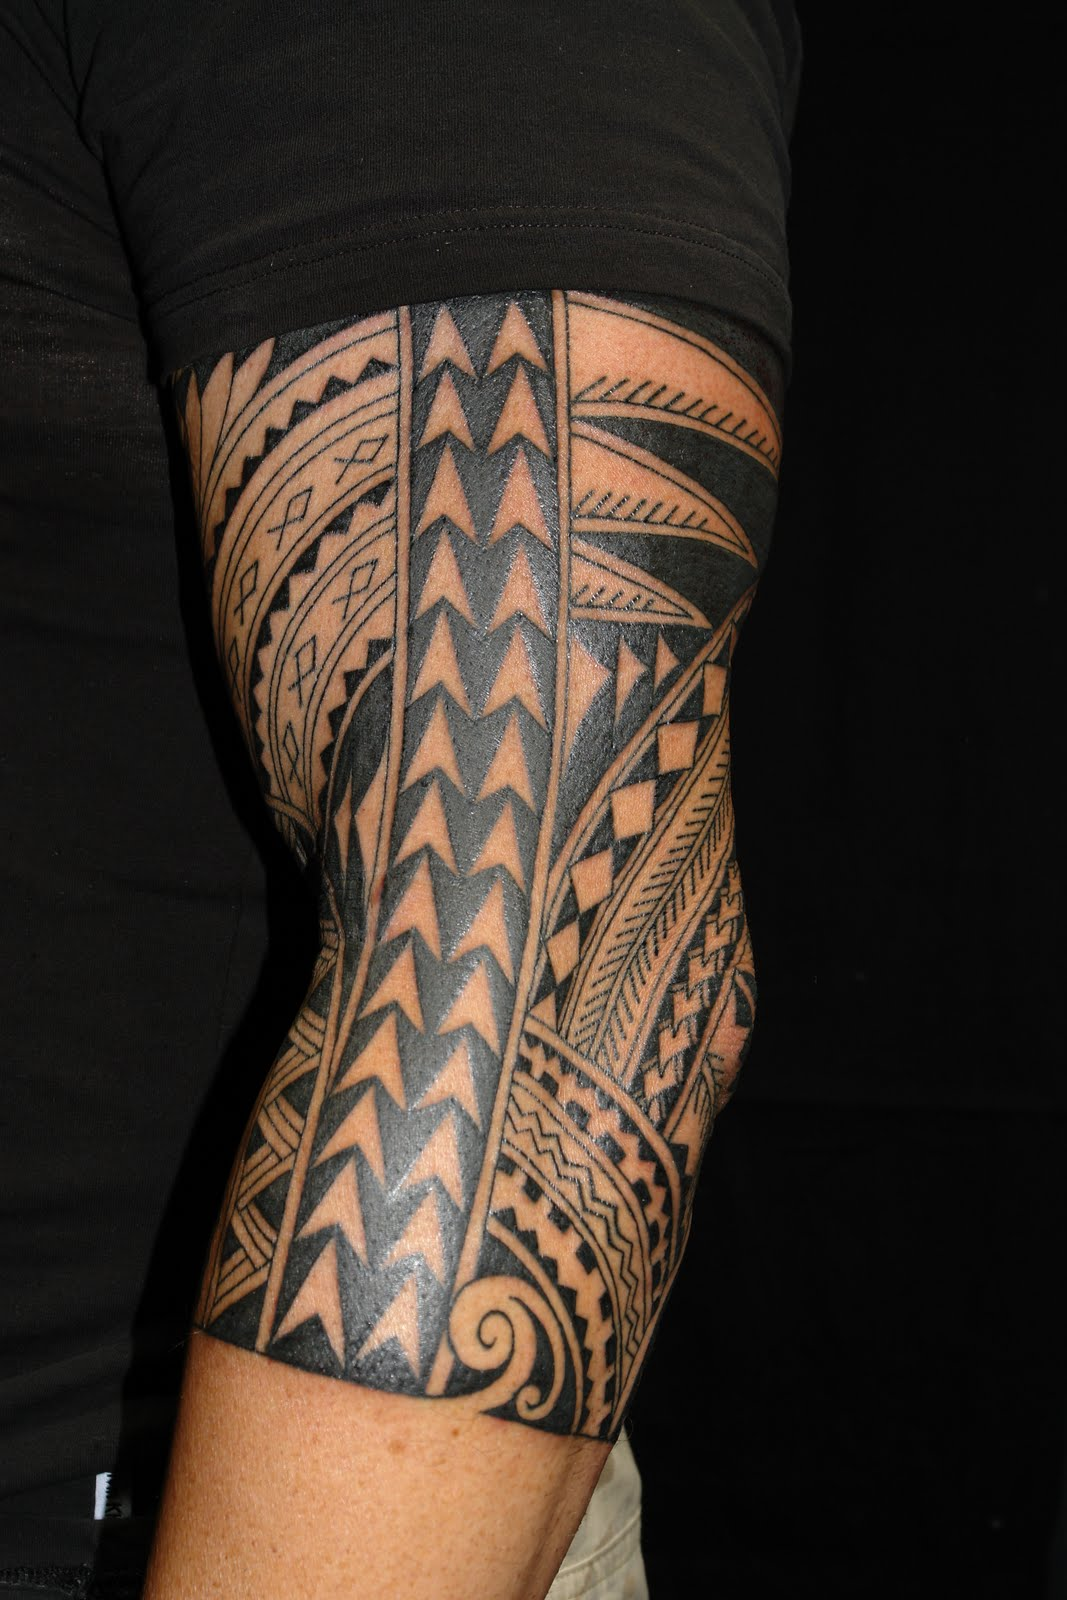 tribal tattoo designs band Polynesian For and Meaning Tattoos Ideas You Tattoos   Designs,